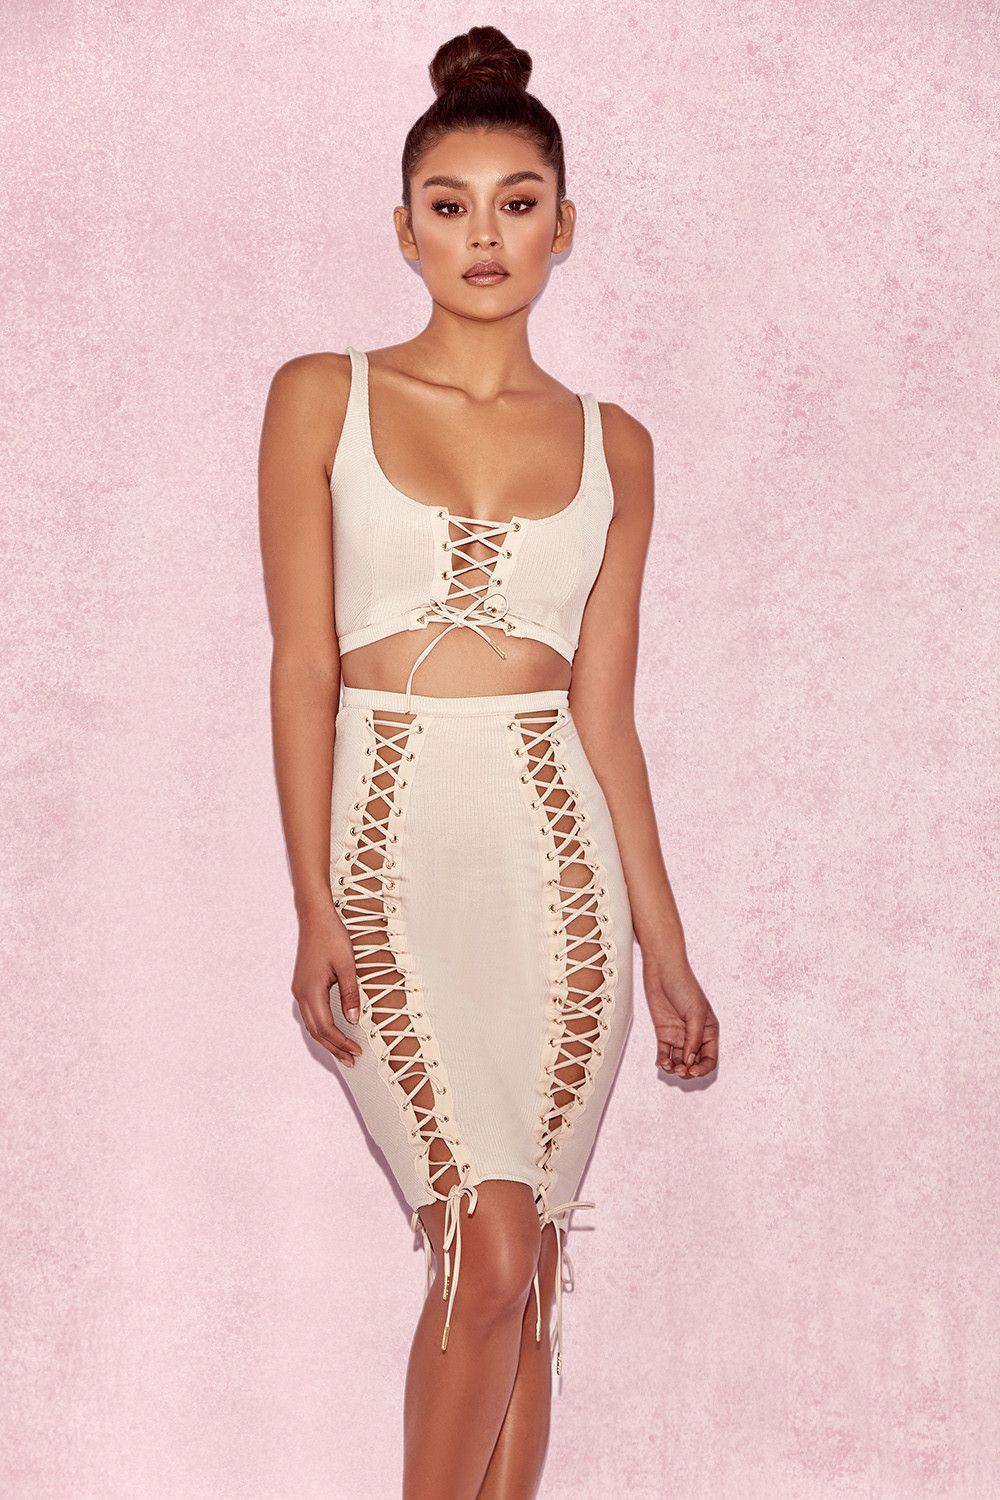 fee76ab1bf9c Cylla Nude Ribbed Two Piece with Lace Ups. Cylla Nude Ribbed Two Piece with  Lace Ups Bodycon Dress Parties, Bandage Dresses ...